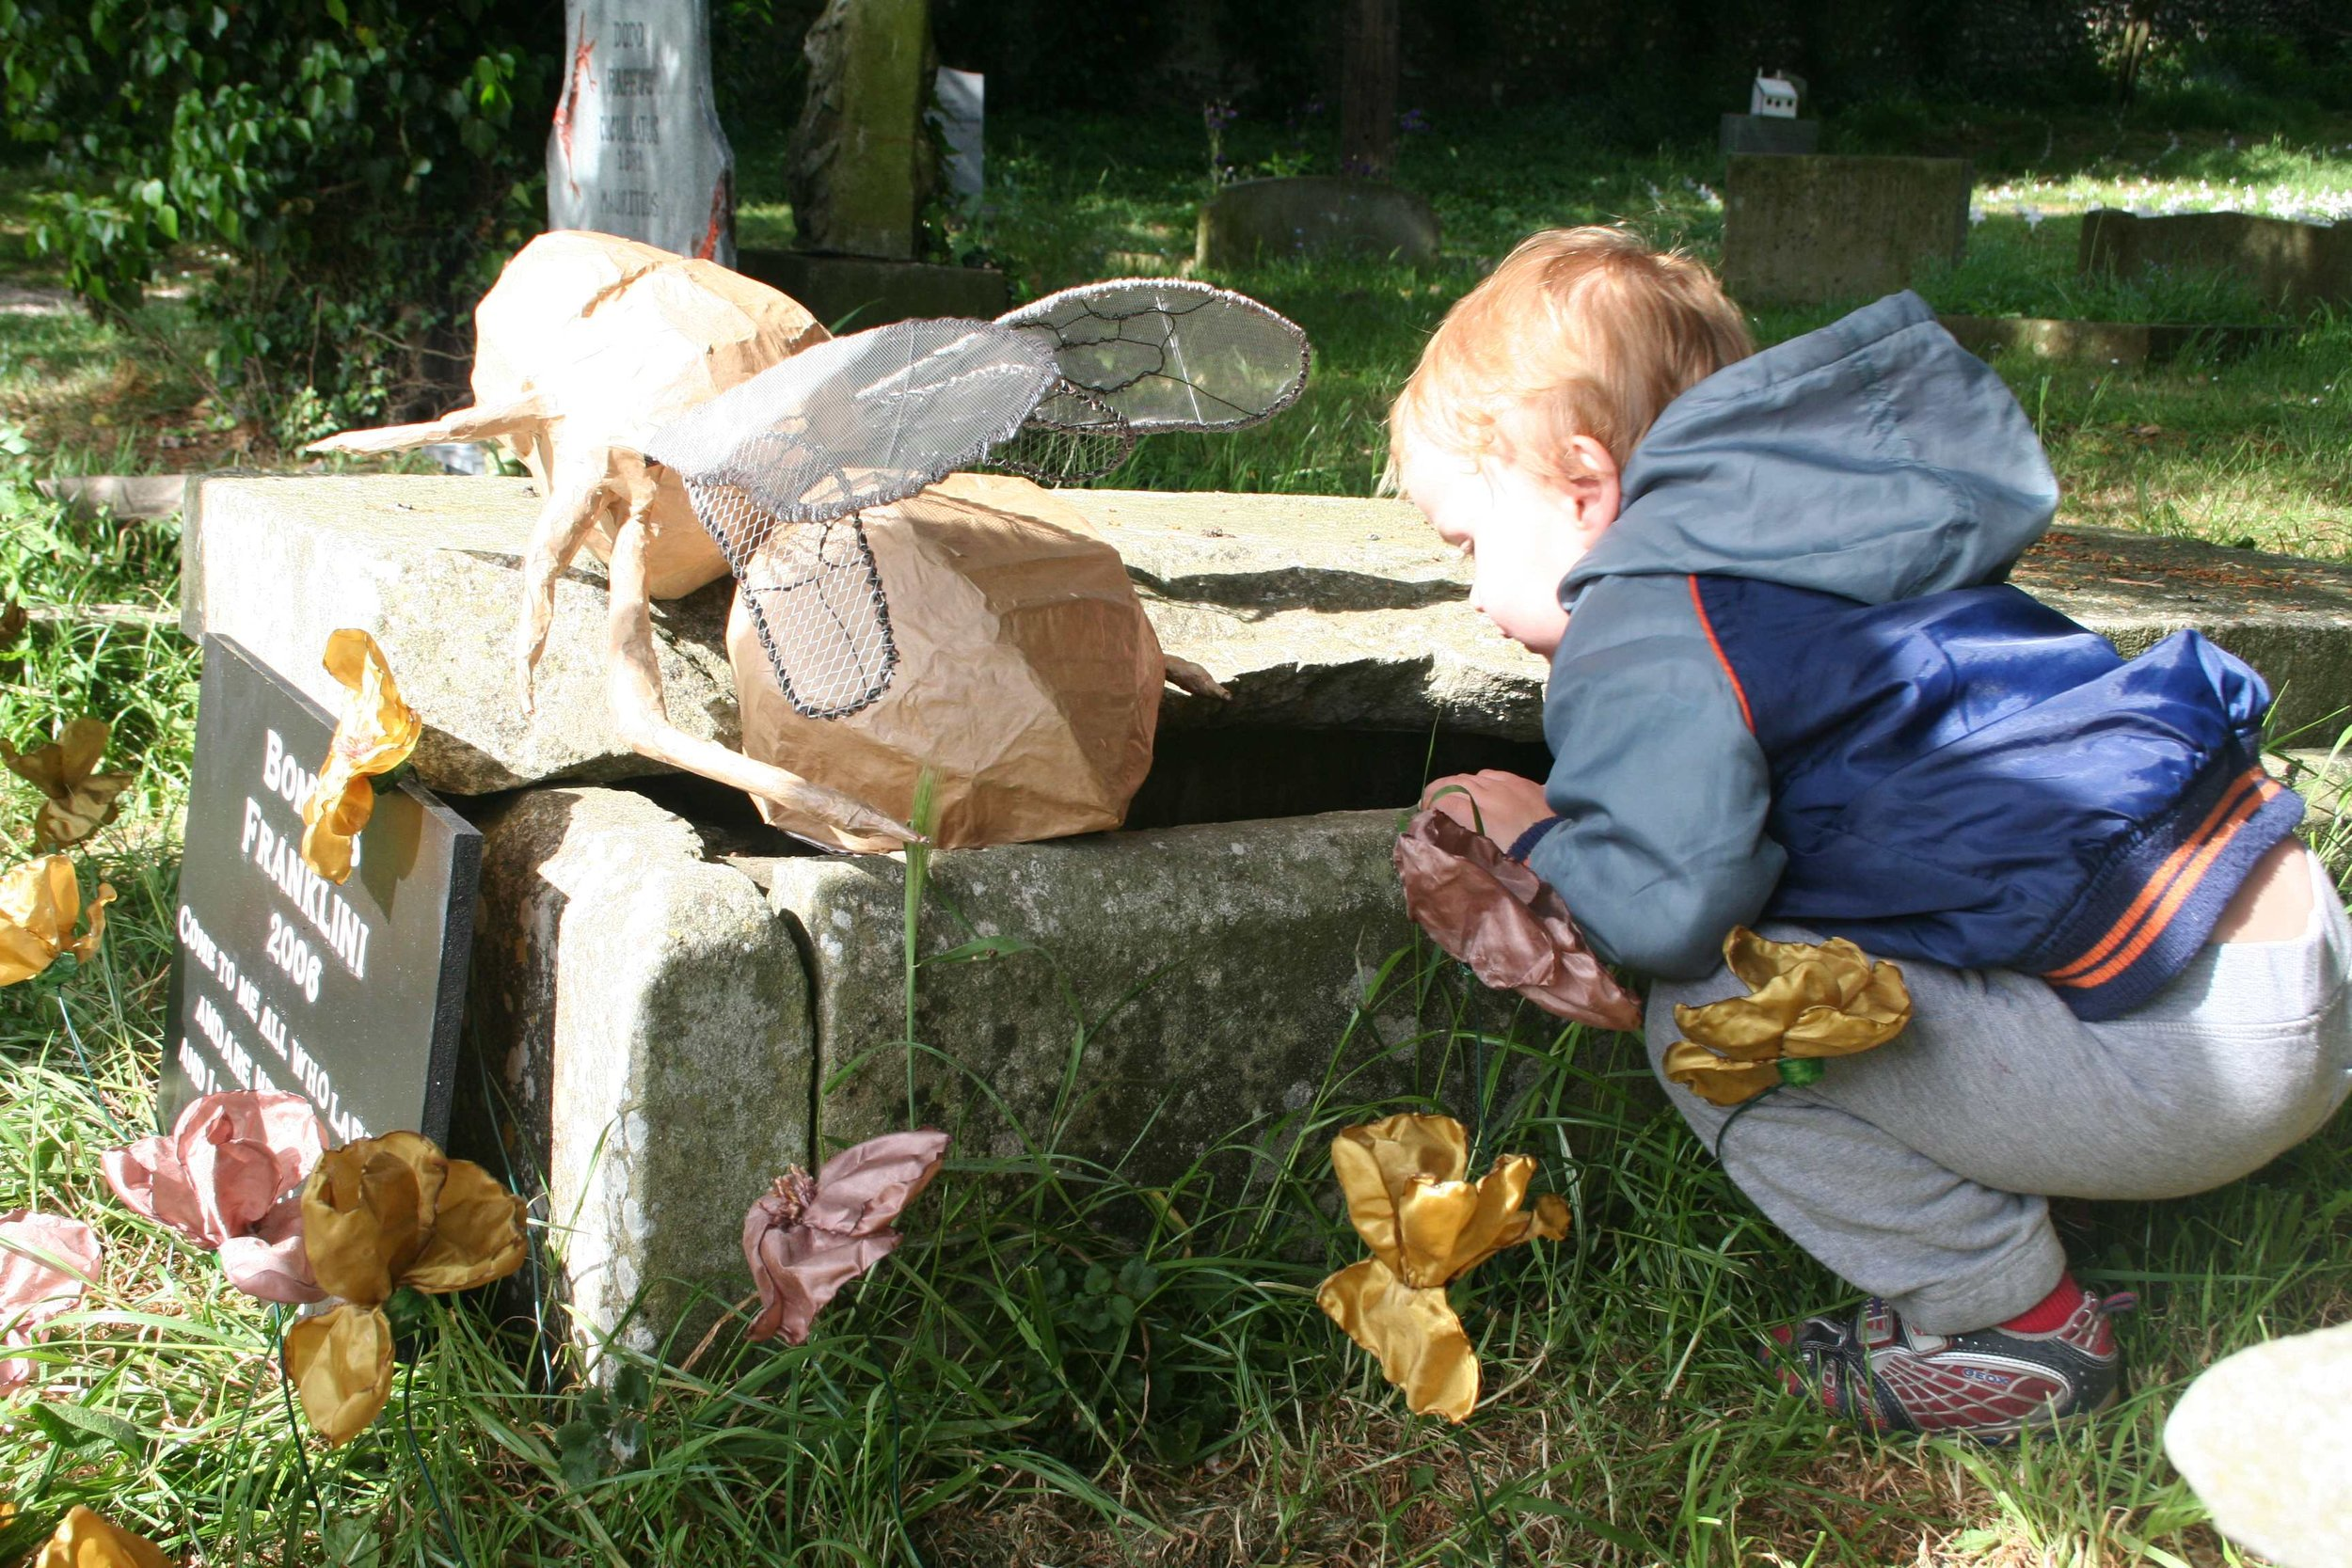 A child visits the 'grave' of Bombus Franklini during the Funeral for Lost Species.